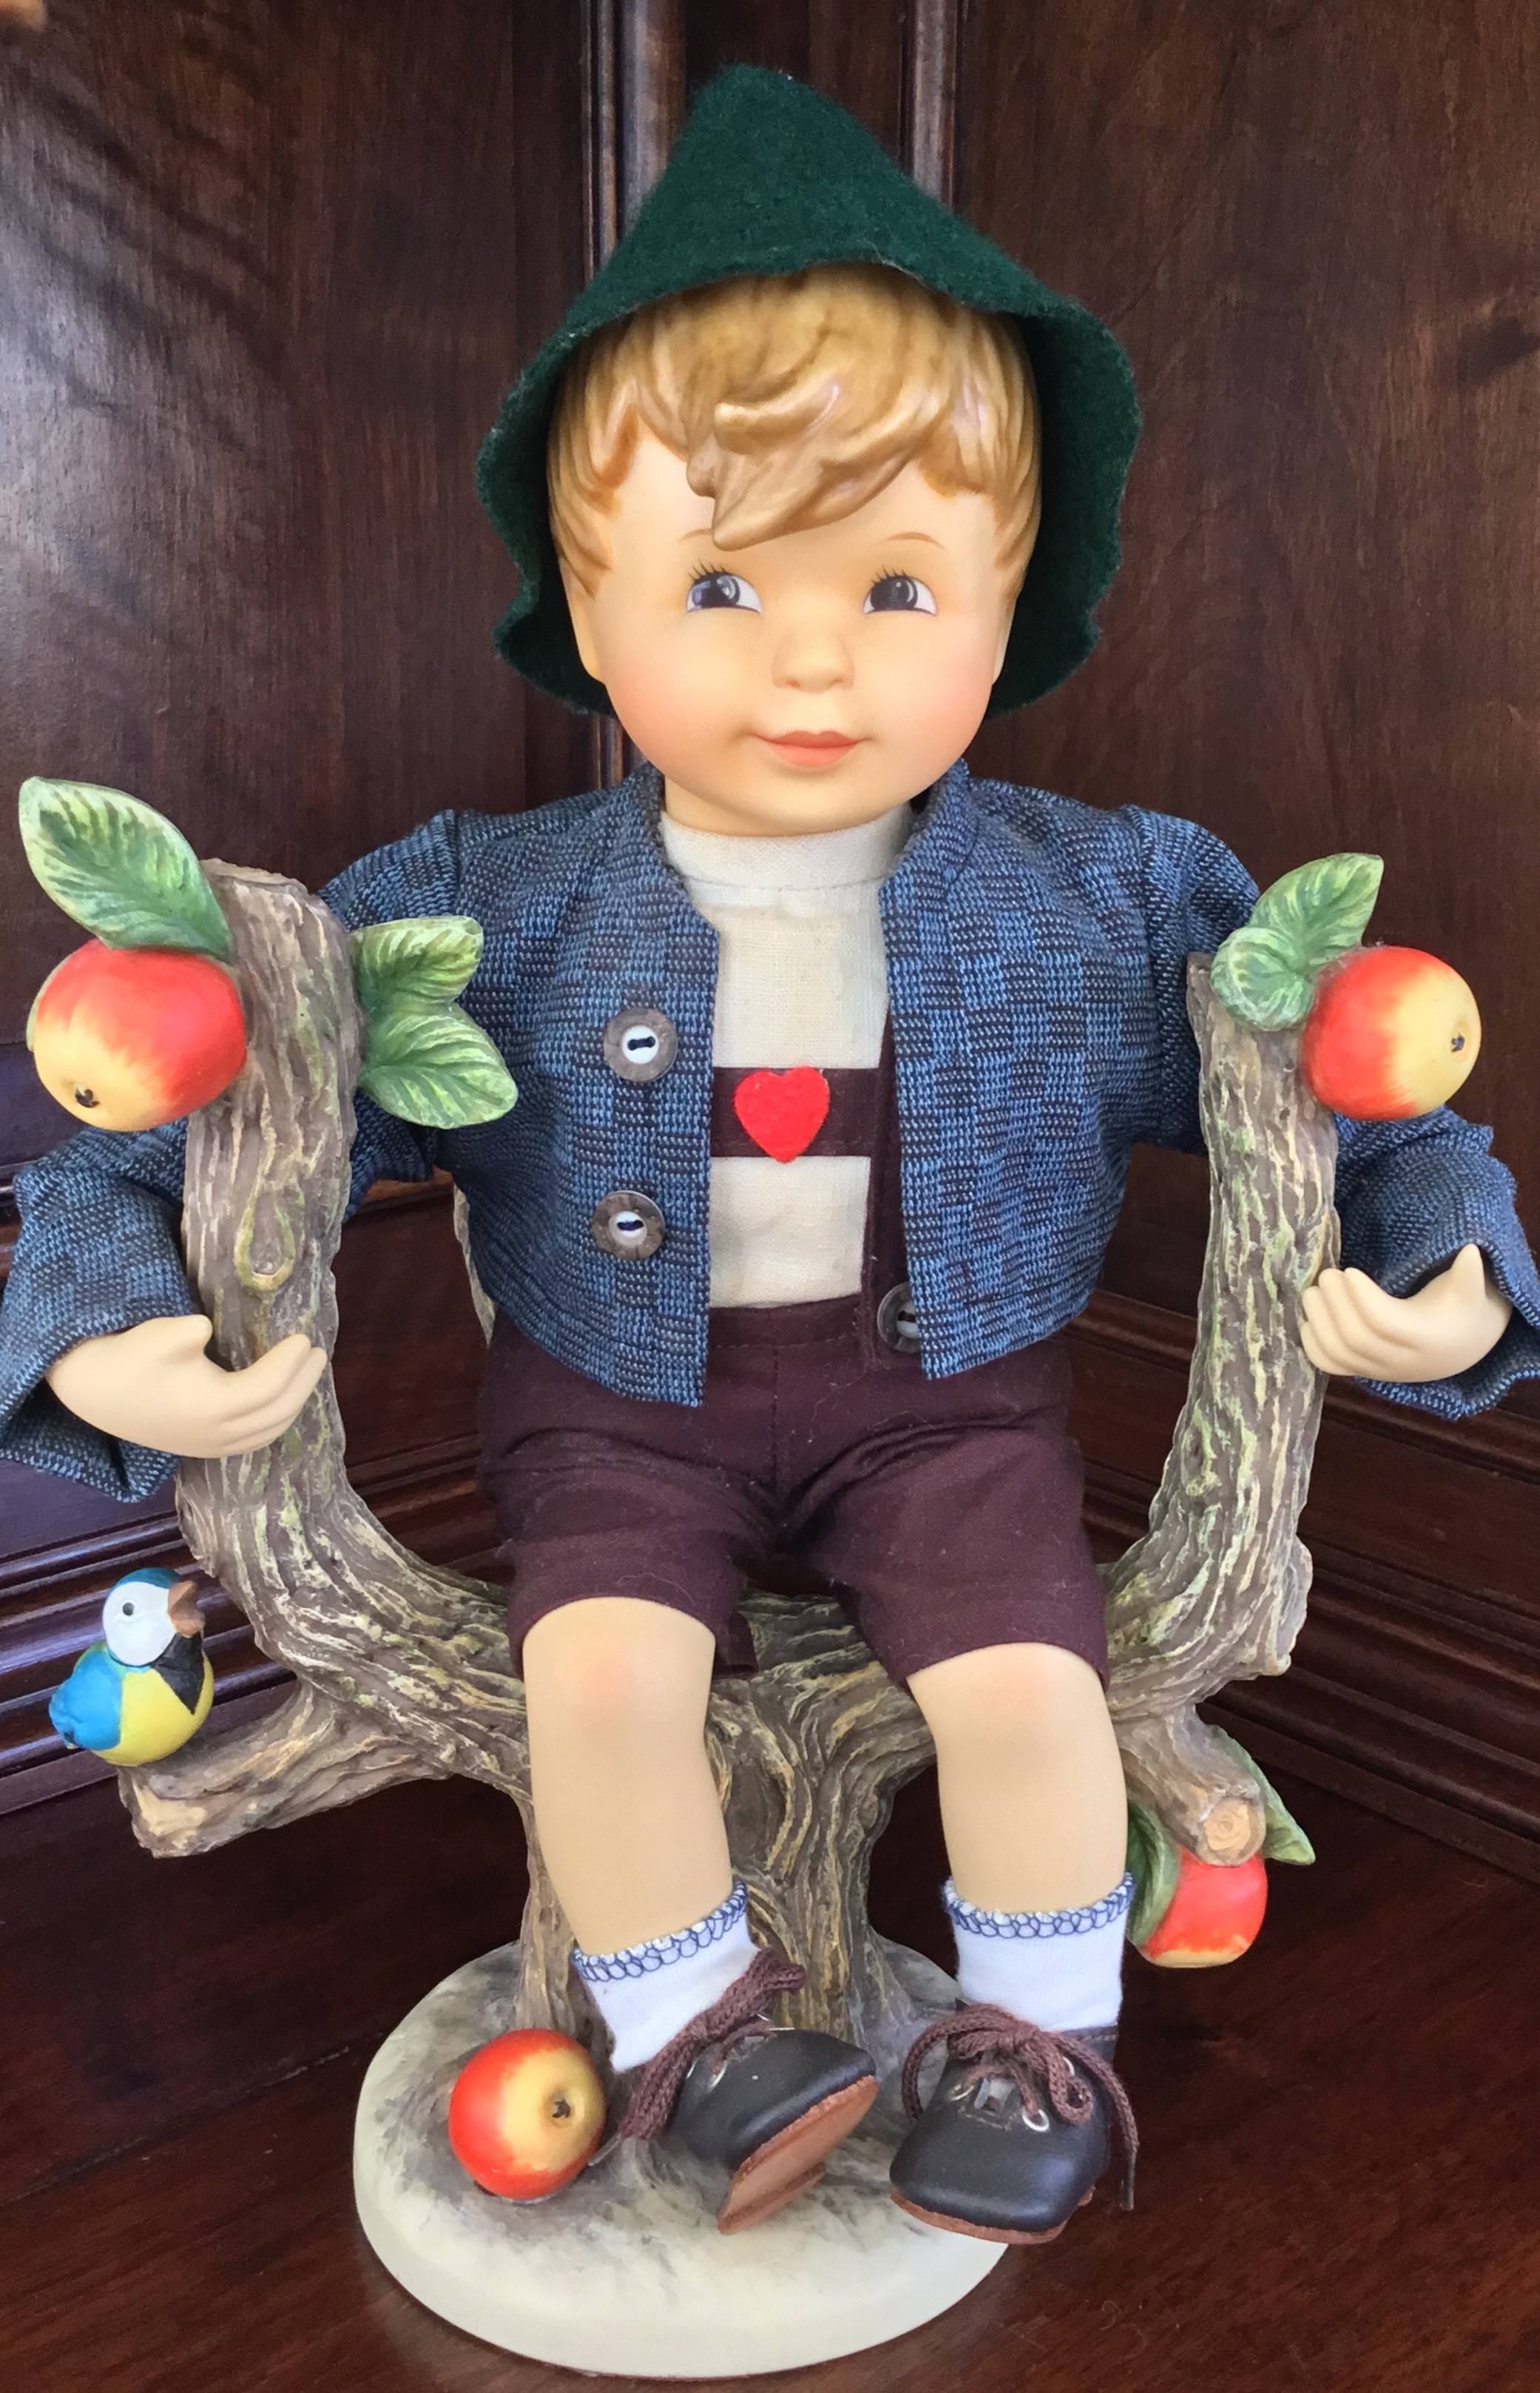 Hummel 13-Inch Apple Tree Boy